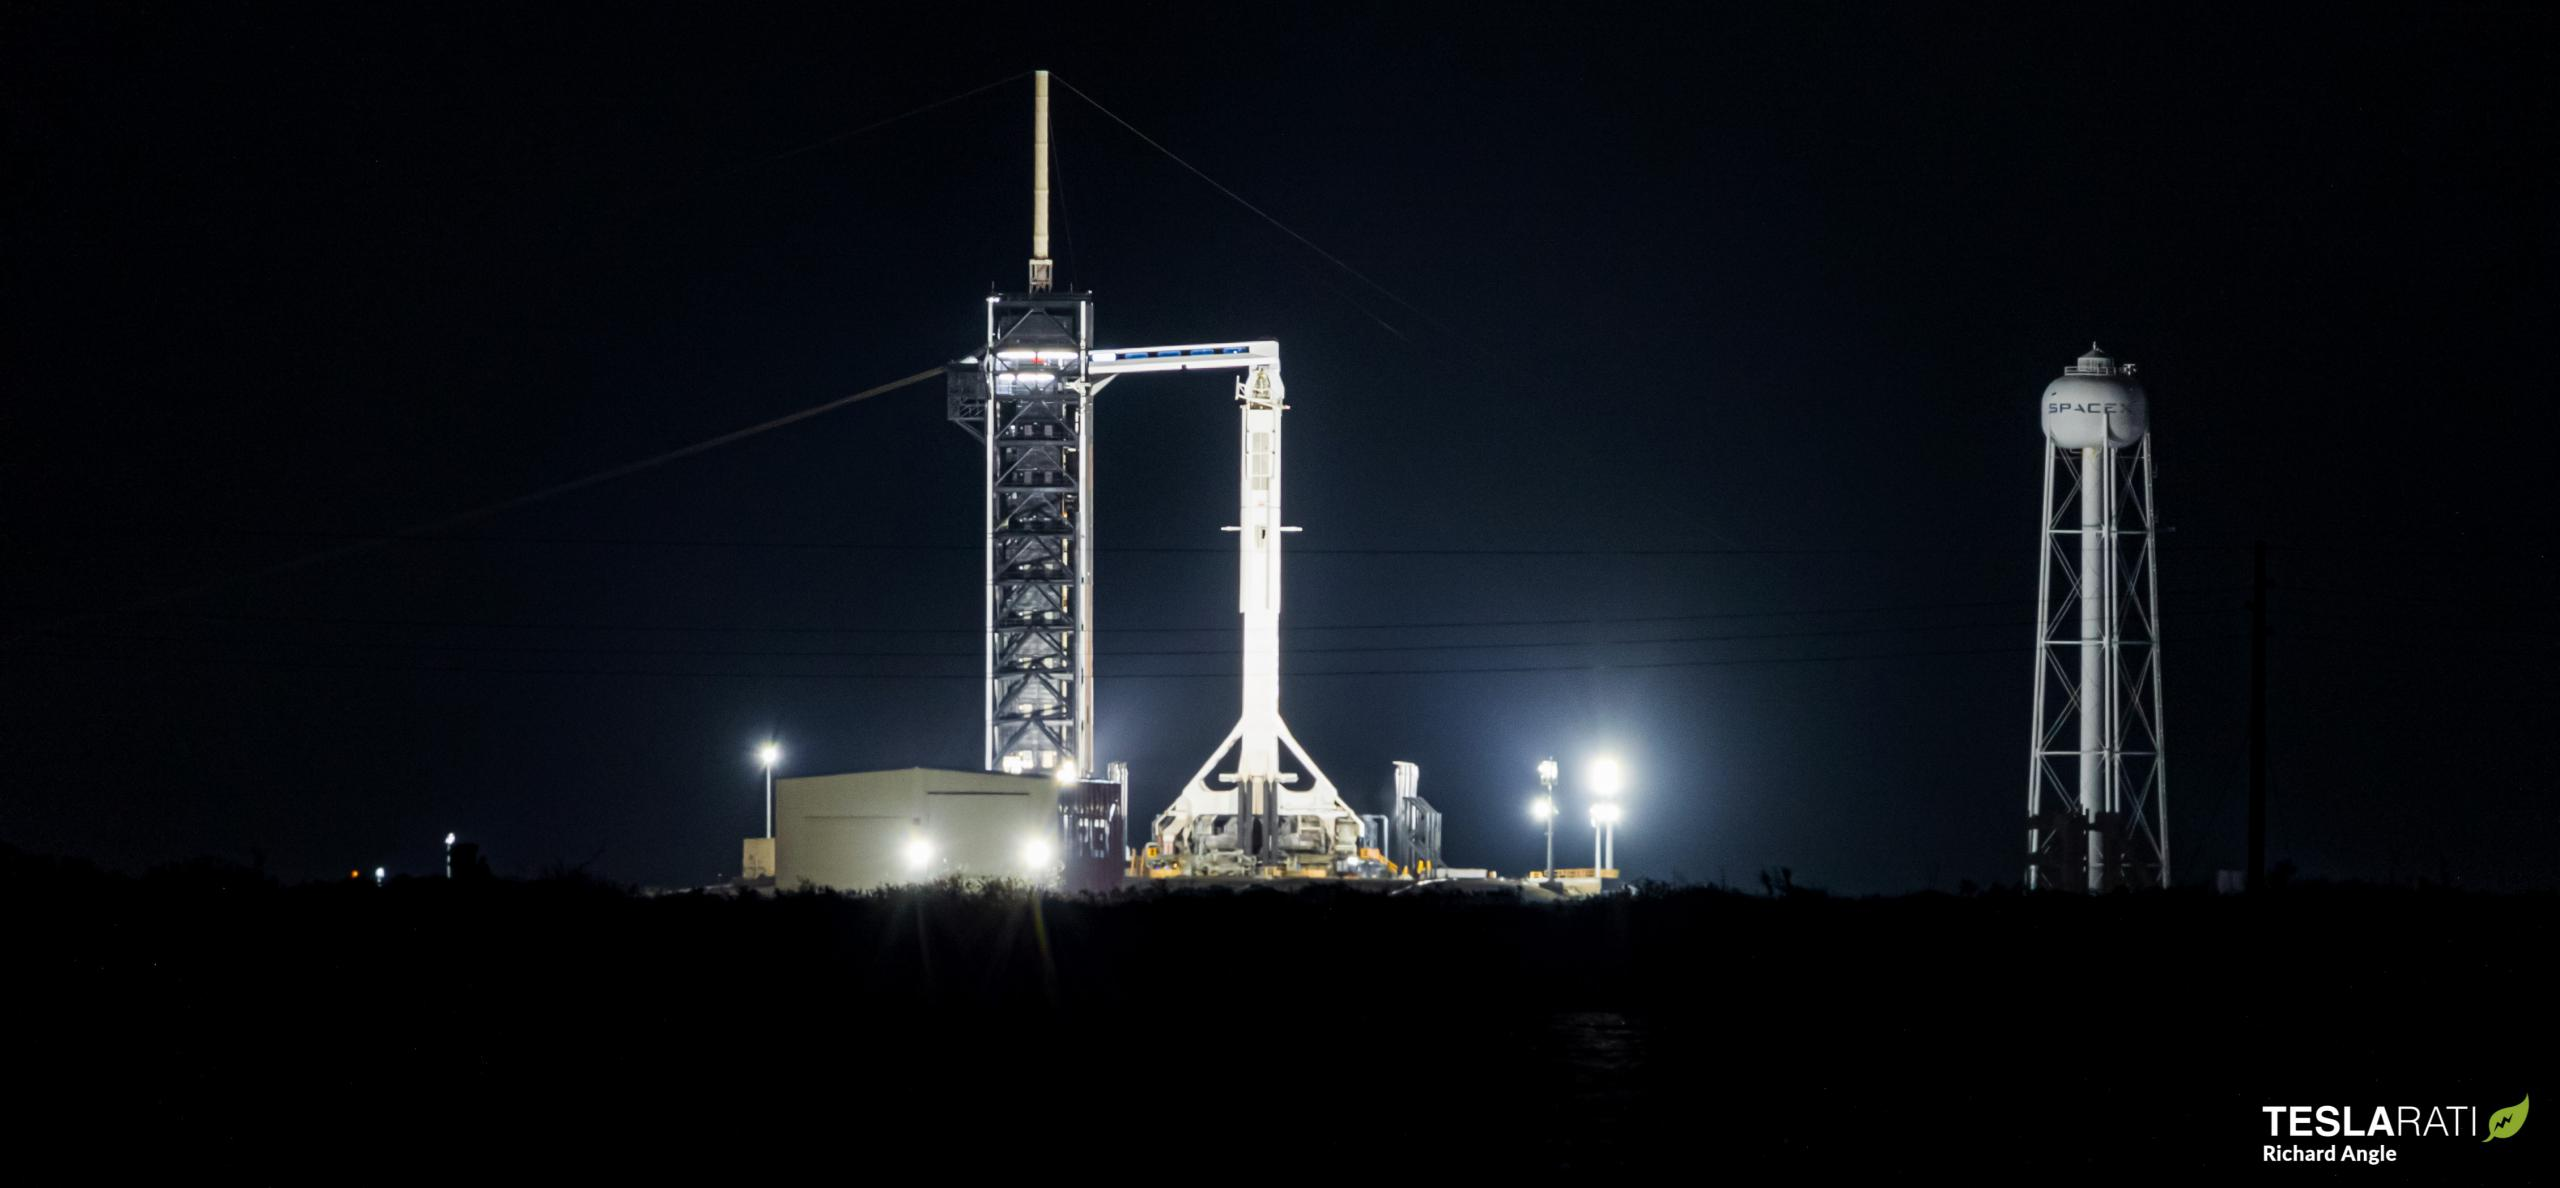 Crew-2 Crew Dragon C206 Falcon 9 B1061 39A 042321 (Richard Angle) prelaunch 1 crop (c)